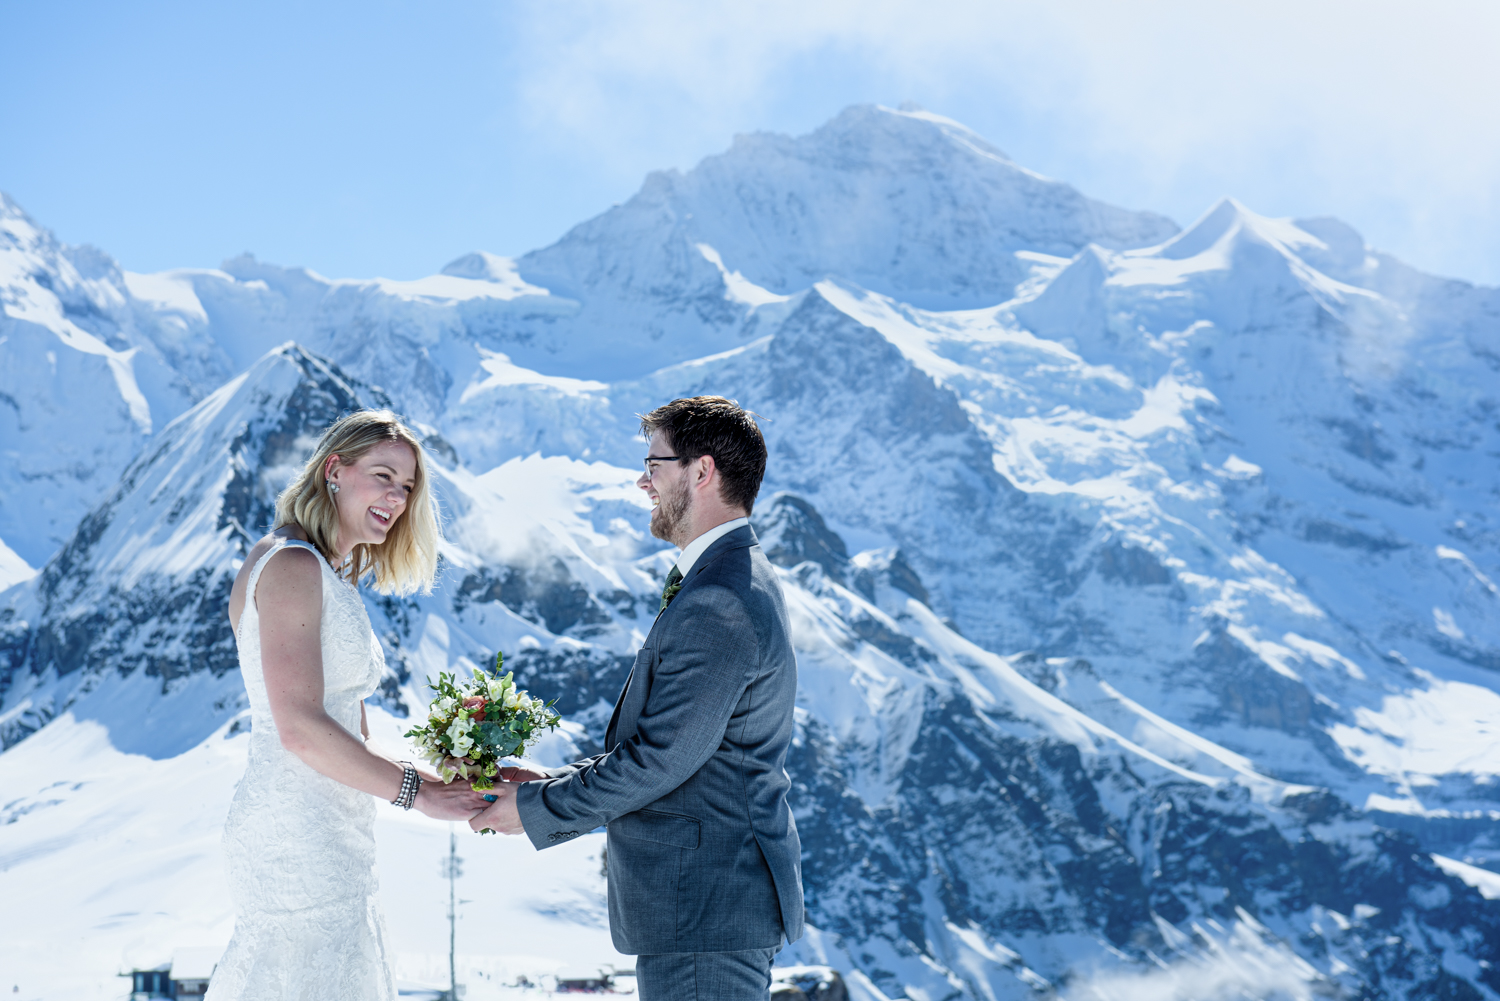 Elopement Specialists in Switzerland